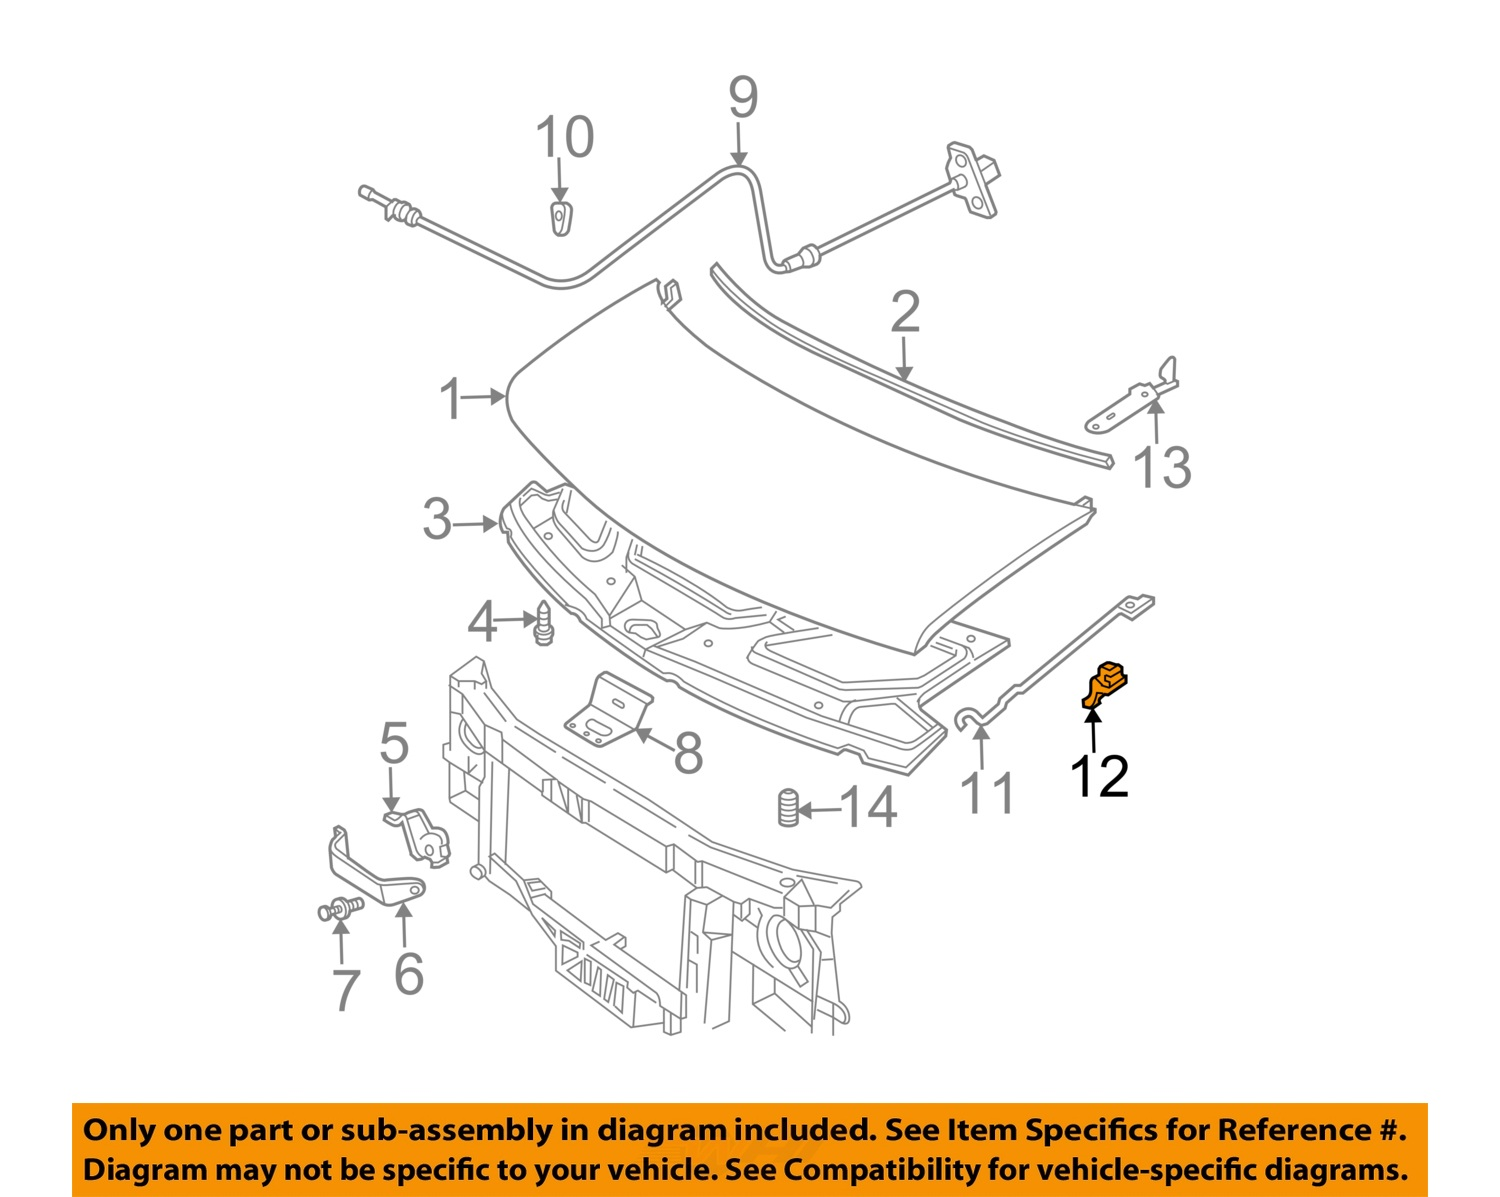 Gm oem hood support prop rod holder clip clamp 15571260 ebay gm oem hood support prop rod holder clip sciox Image collections